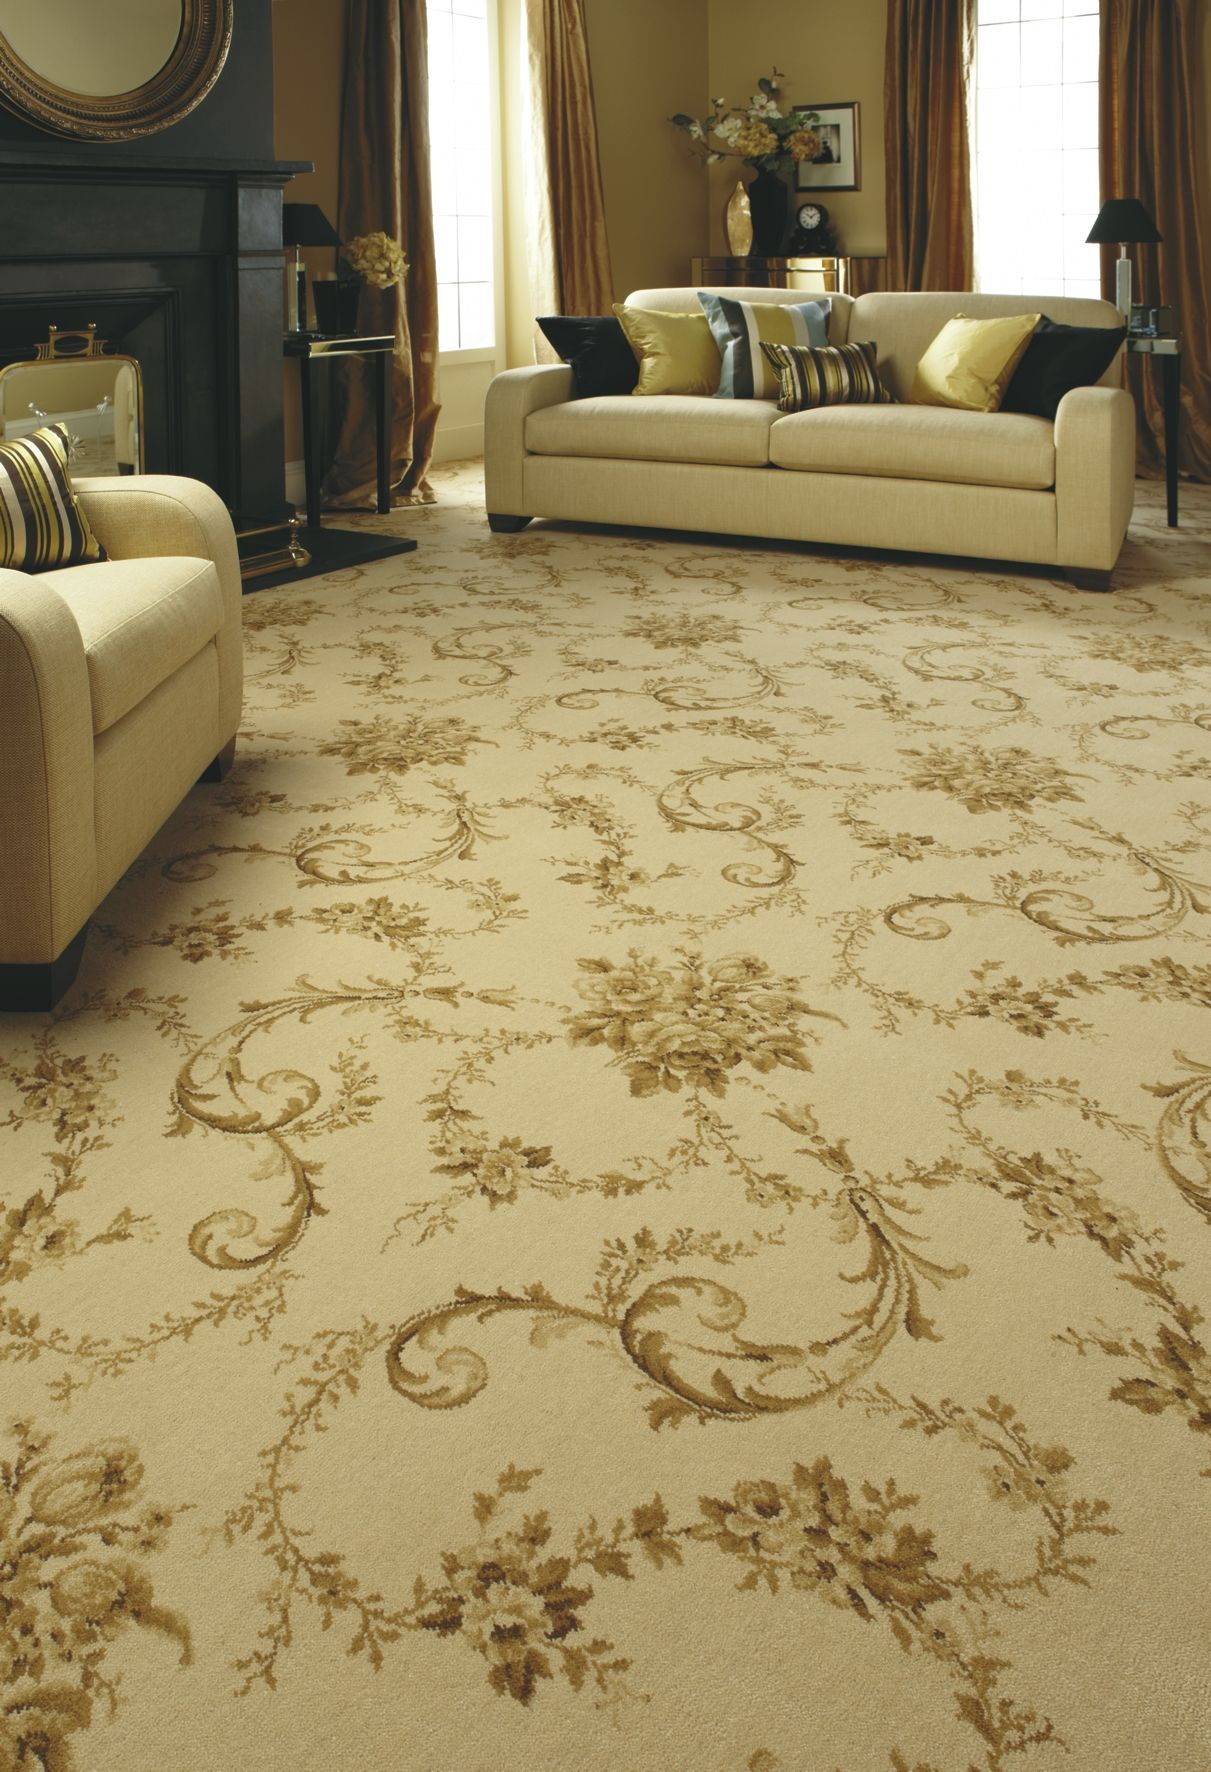 Axminster Carpets Versailles In Soft Cream Patterned